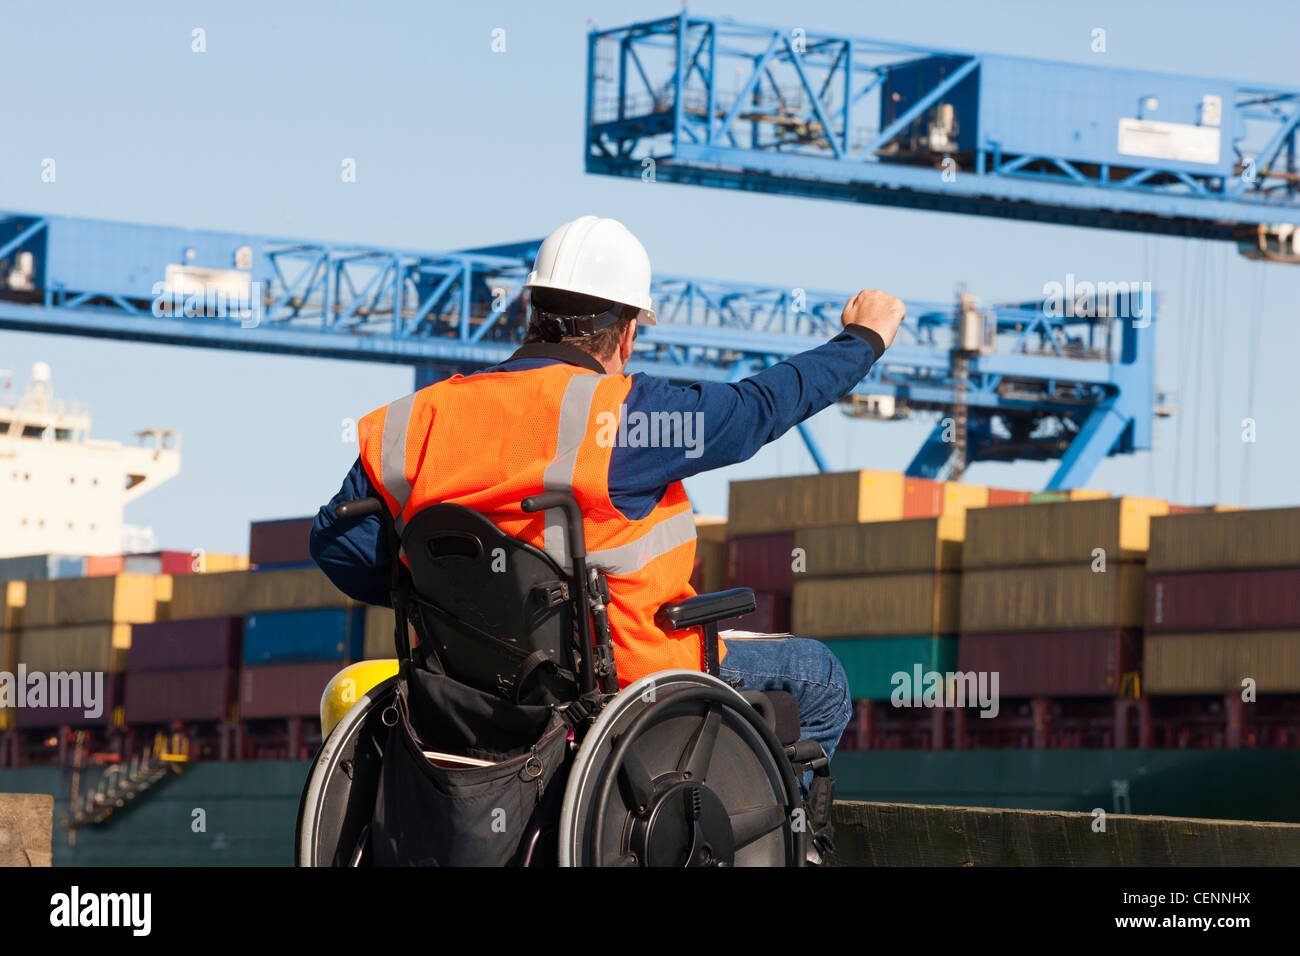 Transportation engineer in a wheelchair giving directions to shipping containers at shipping port - Stock Image